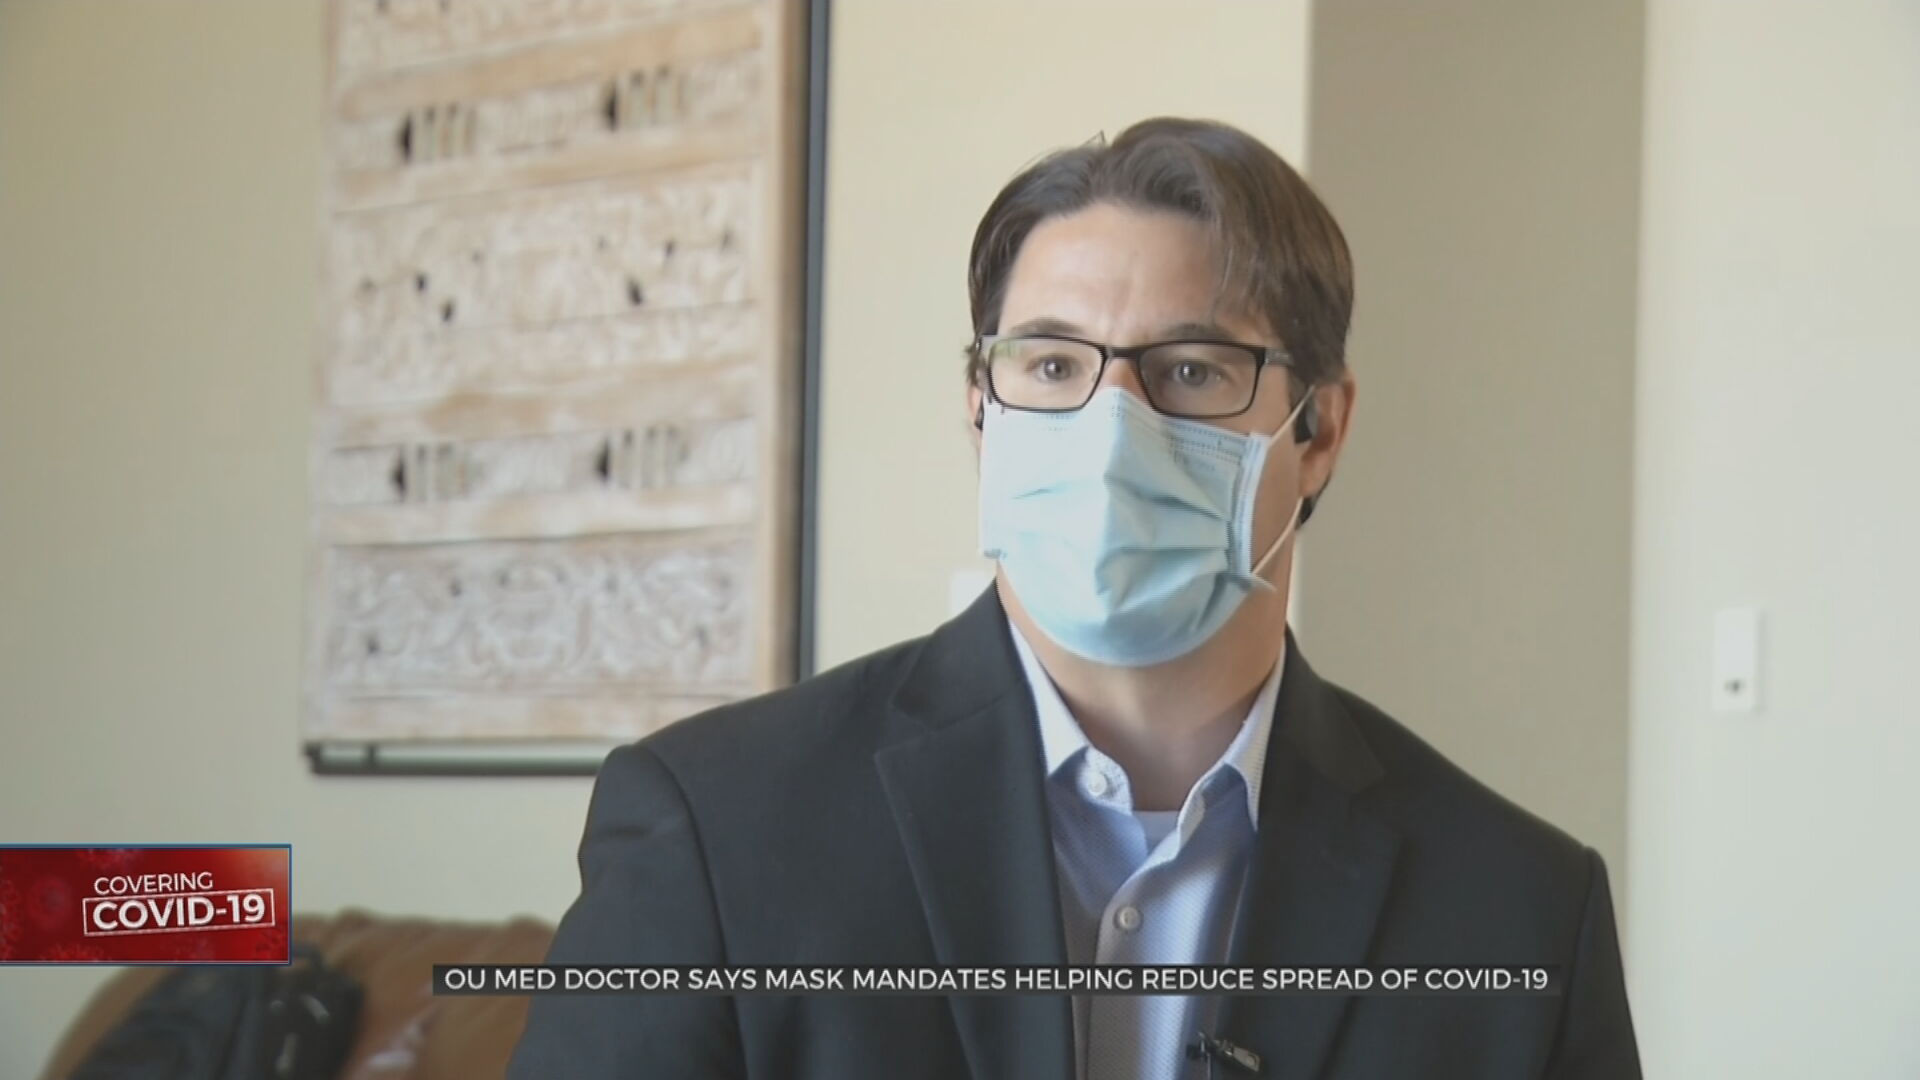 OU Med Doctor Said Mask Mandates Effective In Reducing COVID-19 Spread